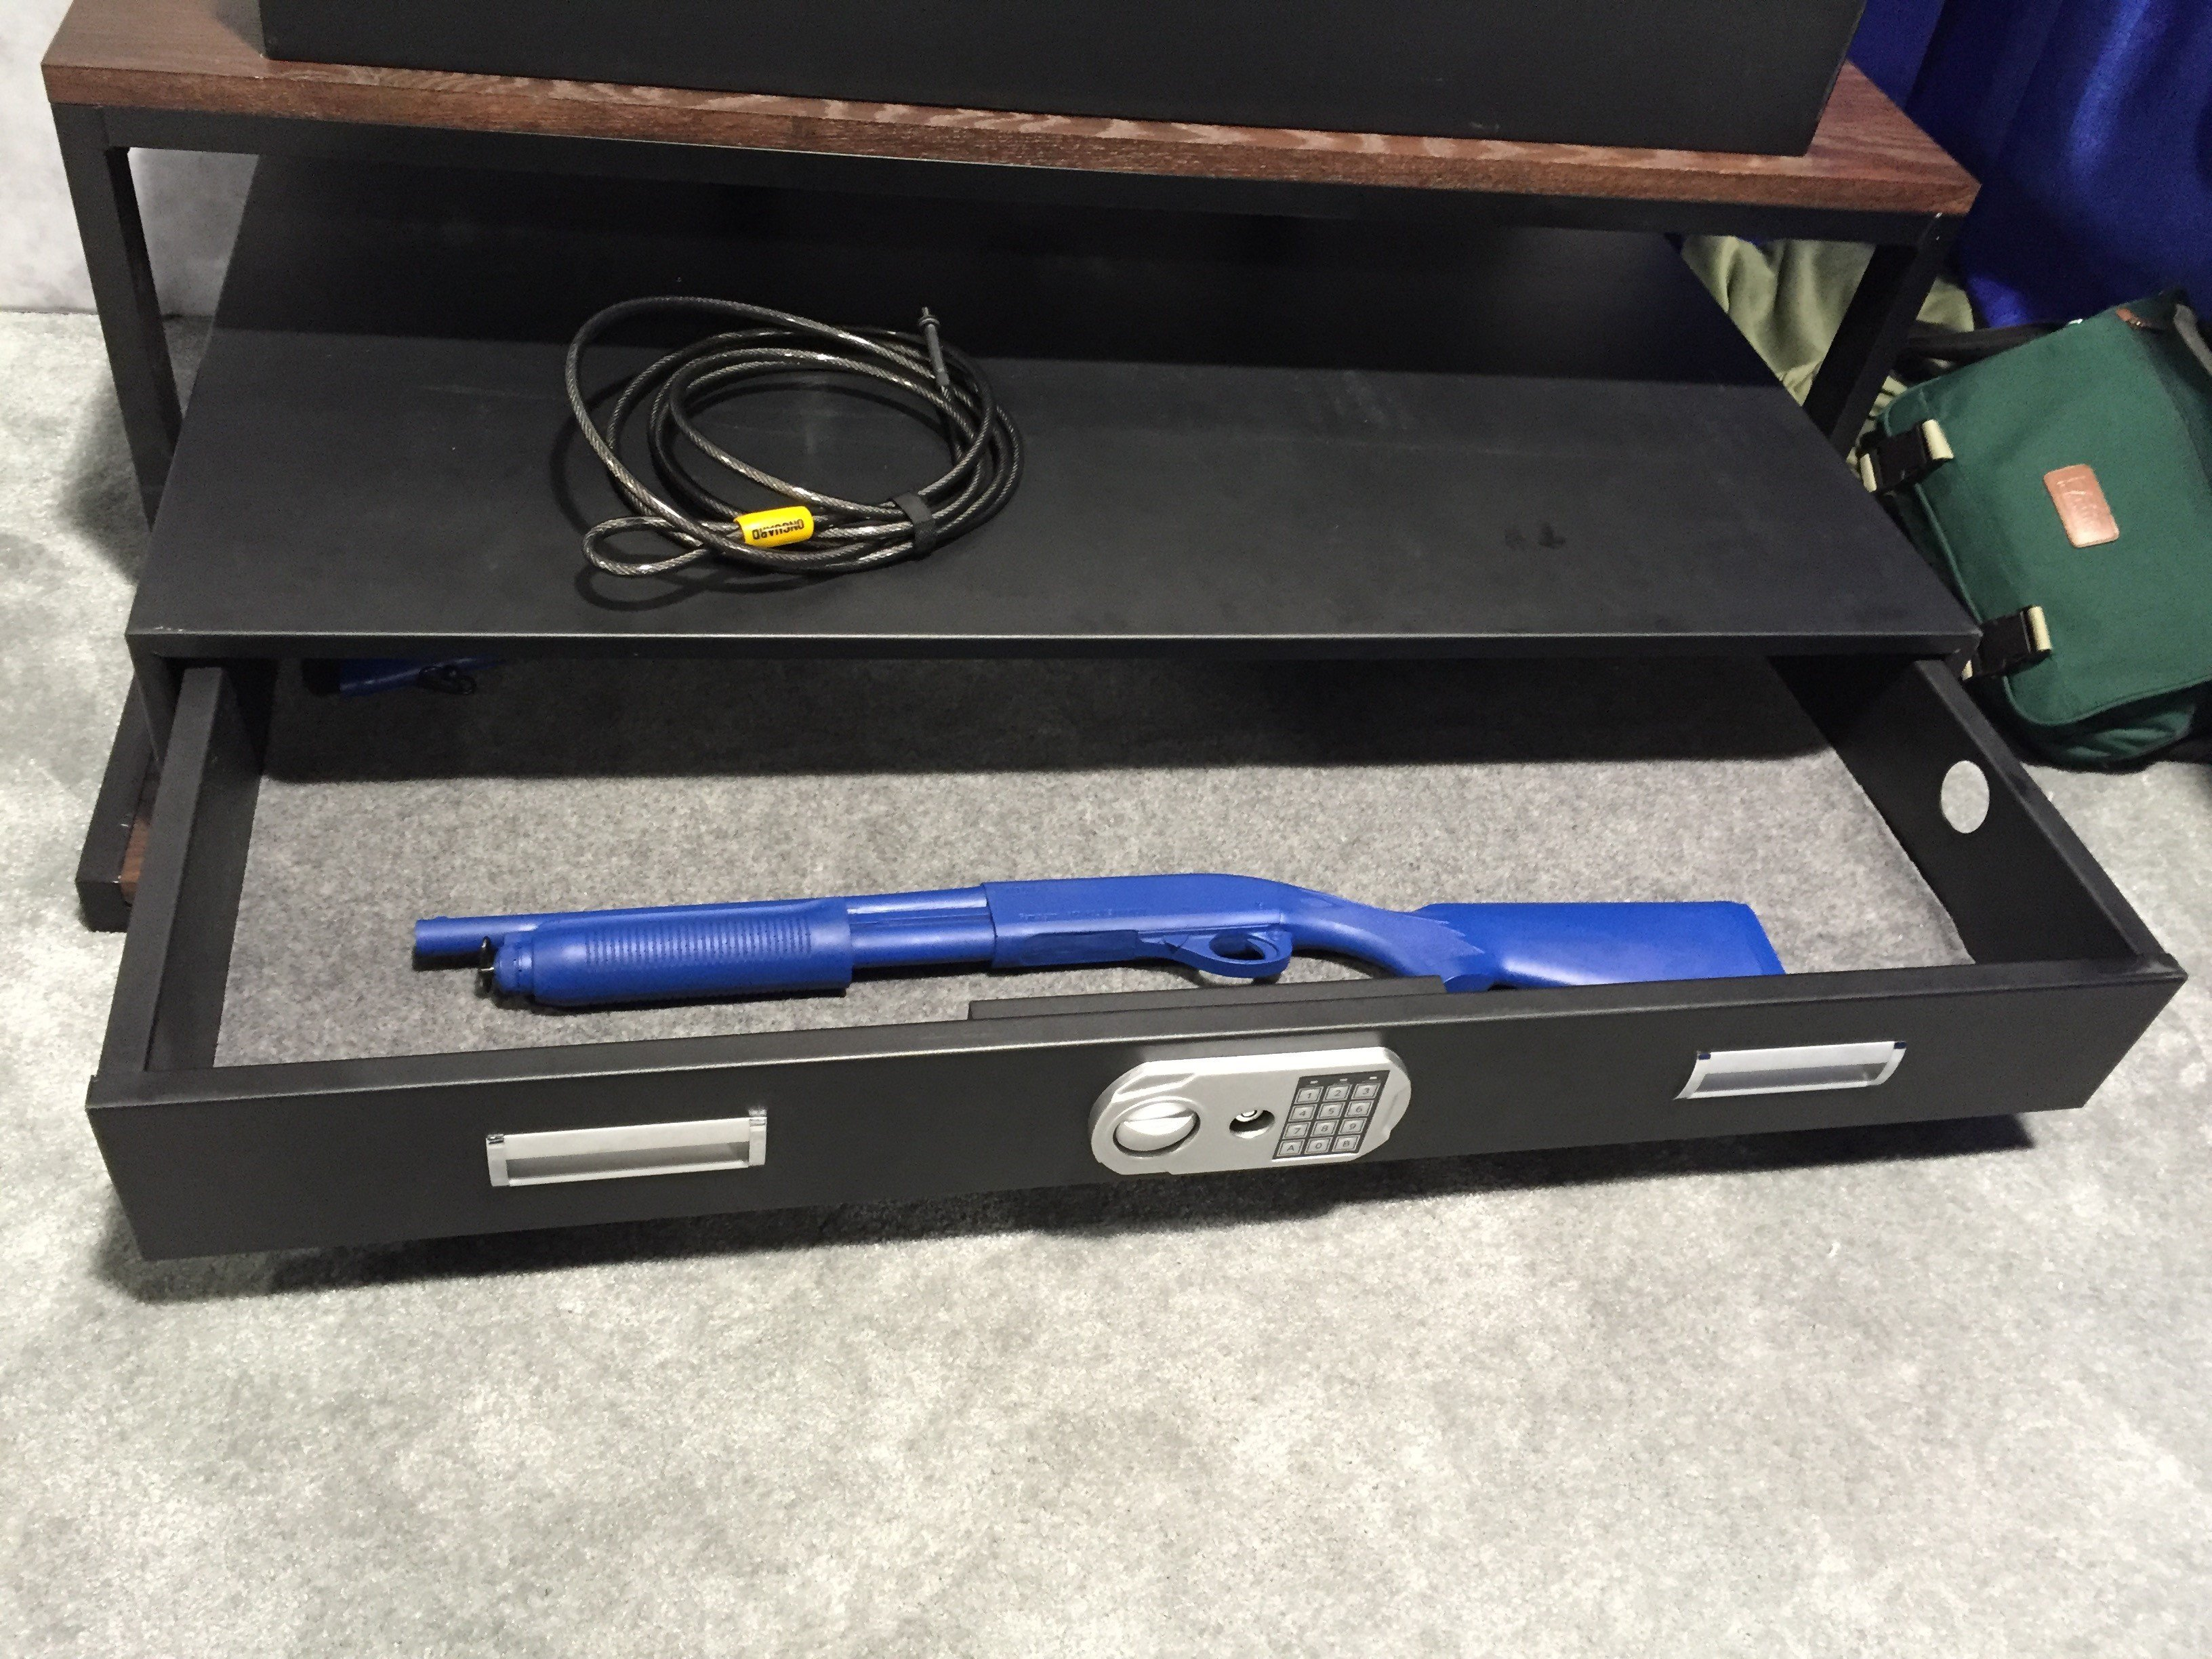 Under bed gun safe biometric - If You Are A Woman Looking To Get Into Self Defense And The Shooting Sports Worries About Safe Storage Should Not Be The Thing That Stops You